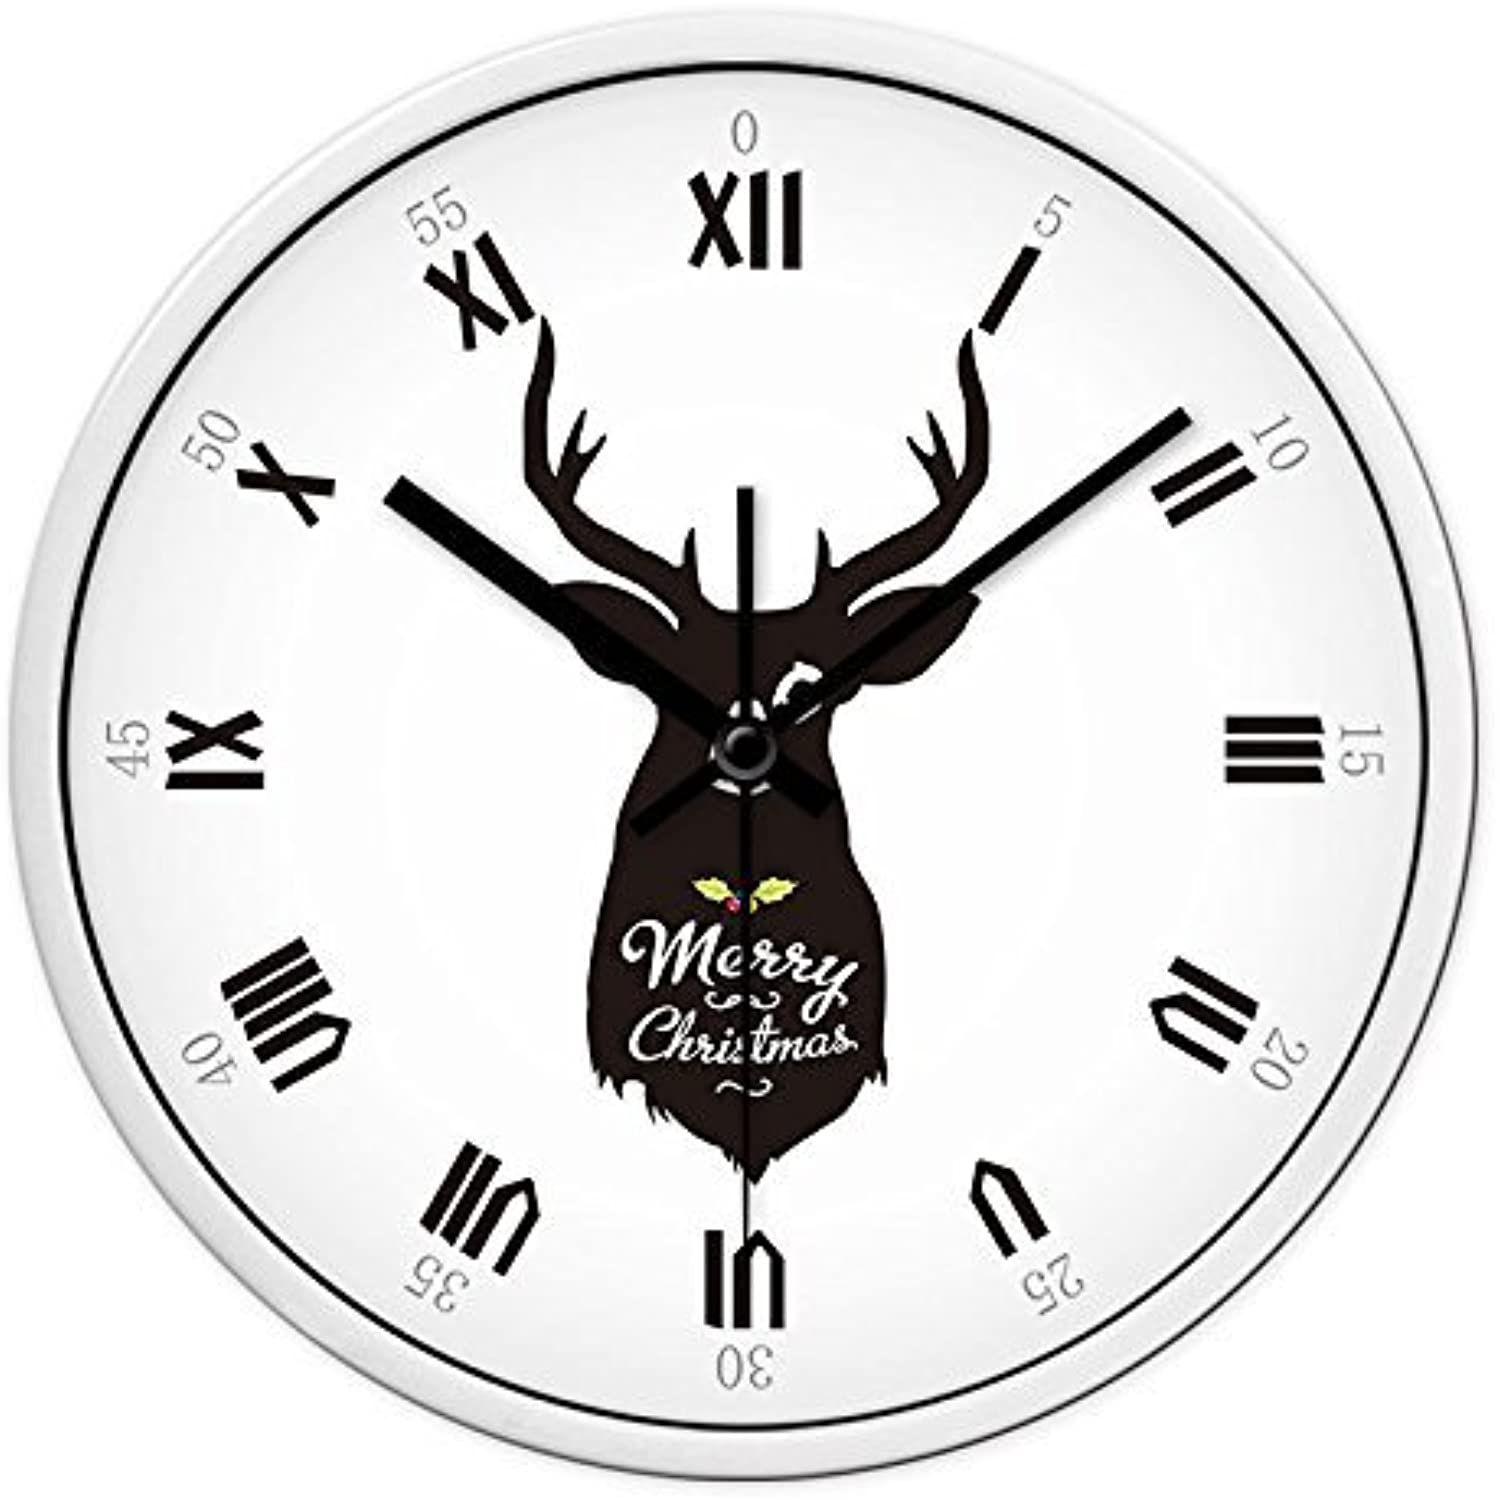 Creative Living Room Bedroom Quiet Wall Clocks Wall Charts Clock Table Clock Round Modern,12 inch,White Box